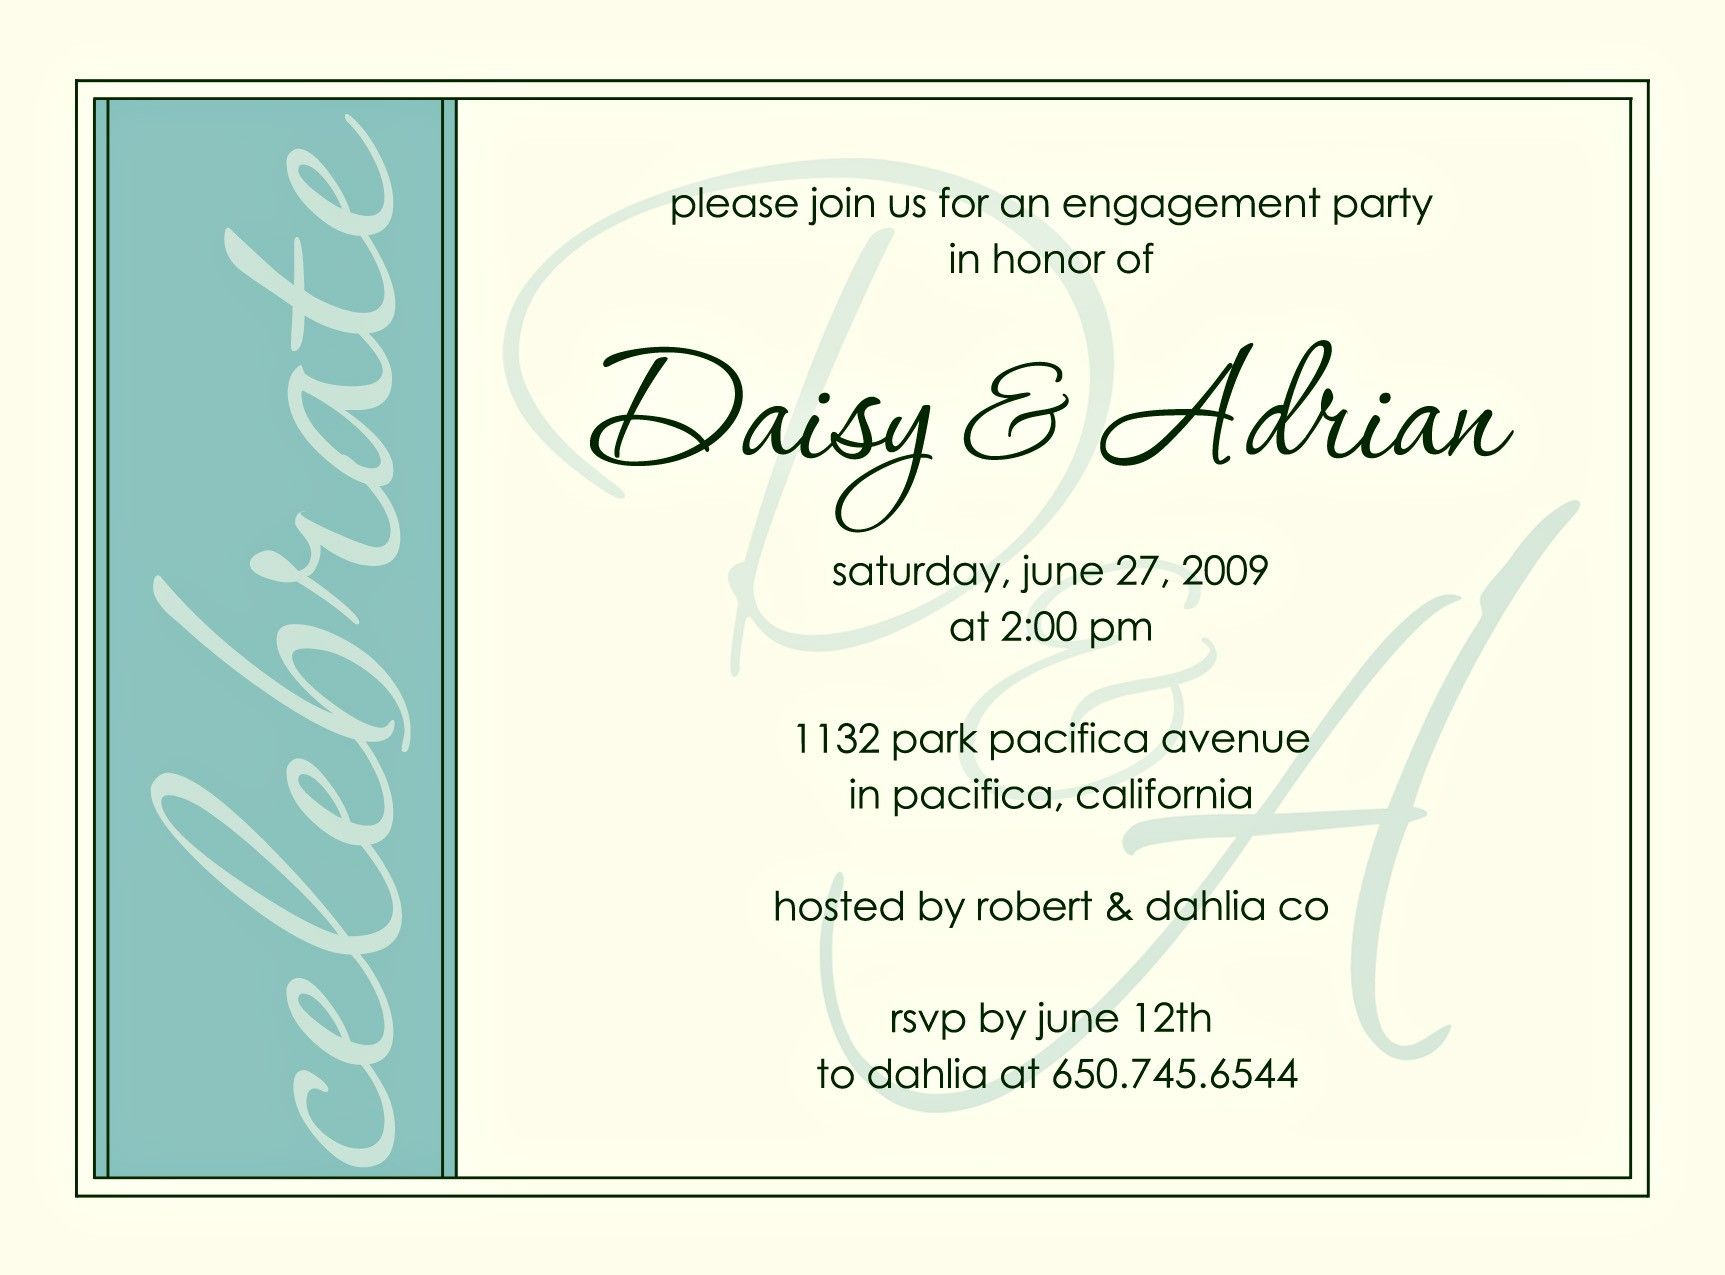 Invitation Message Shop Opening Fresh Engagement Party Party